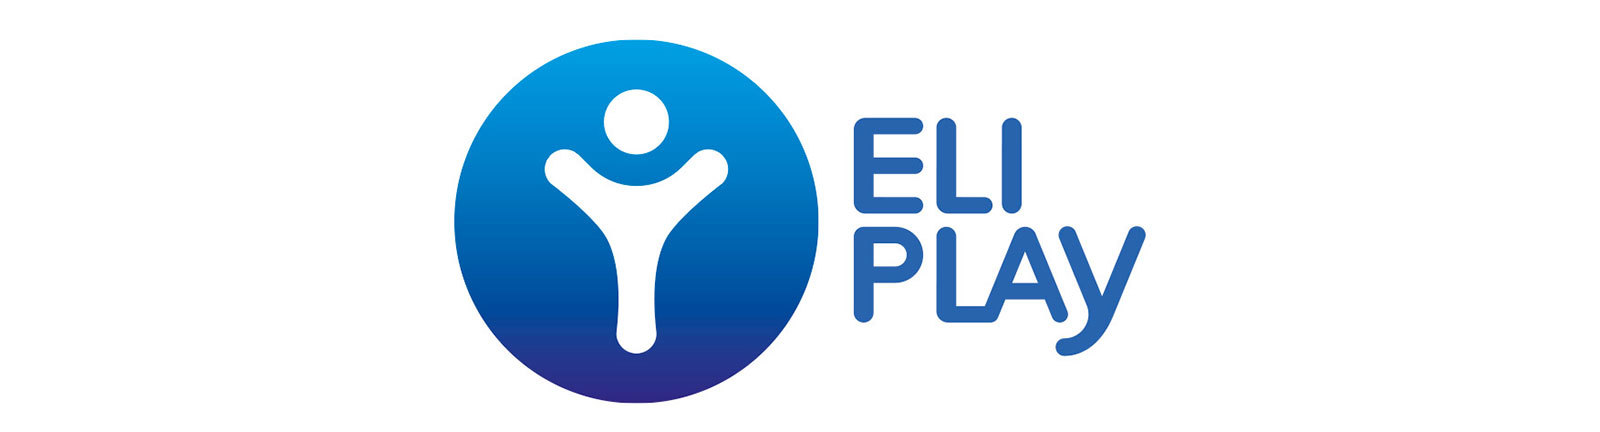 New logo ELI Play, manufacturer indoor playgrounds and trampolineparks